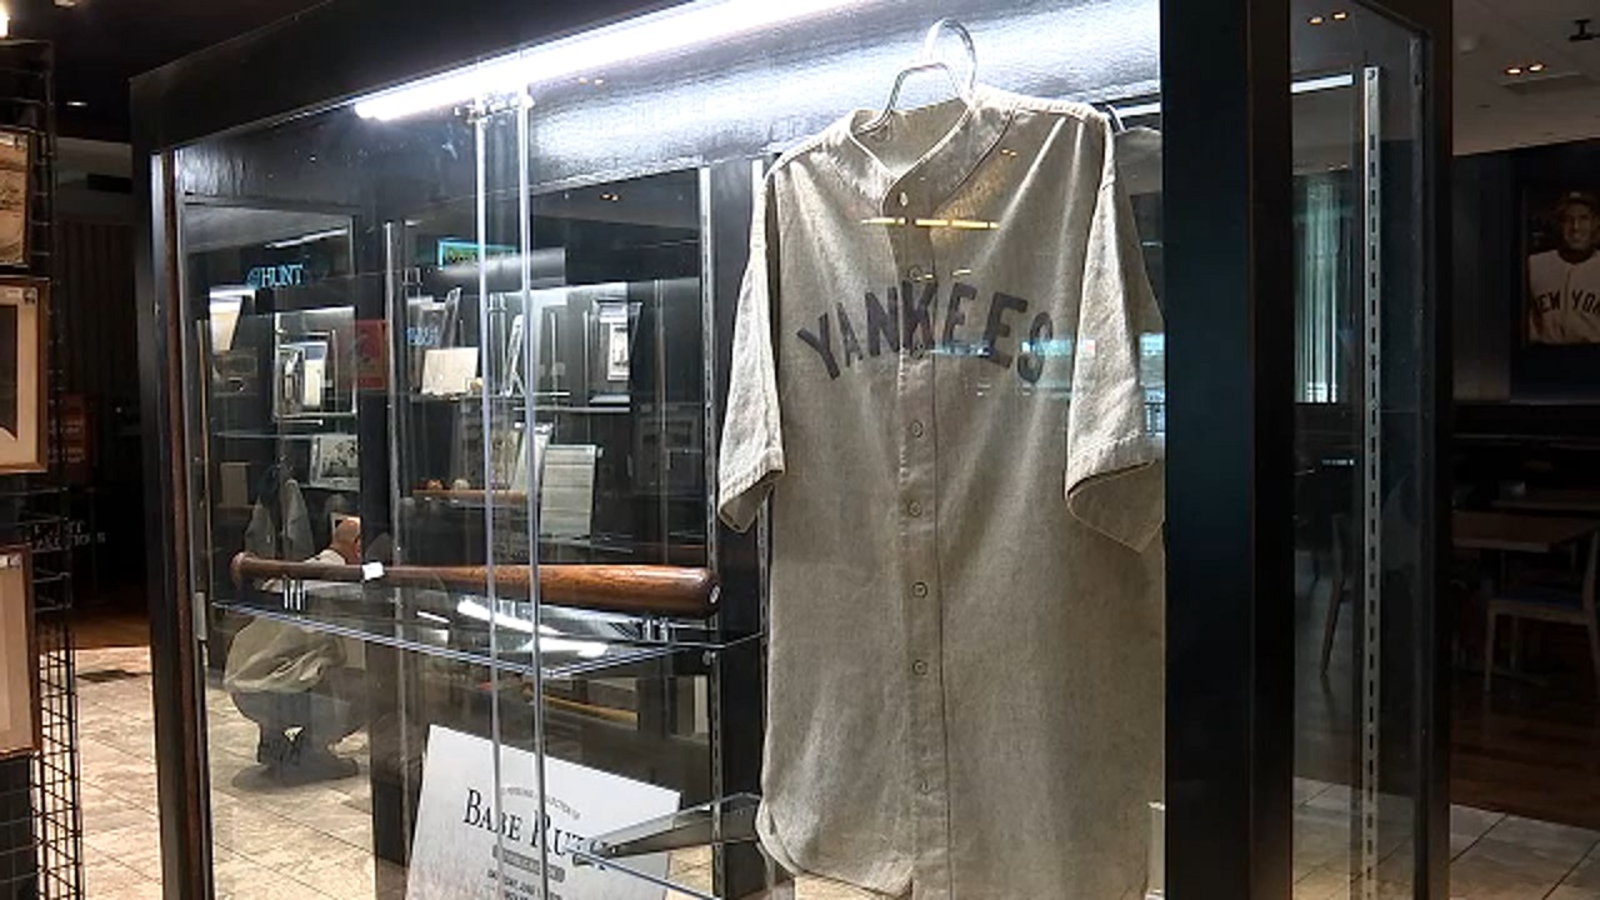 f492bc3a67f Babe Ruth Yankees jersey sells at auction for a record $5.64 million |  abc7ny.com